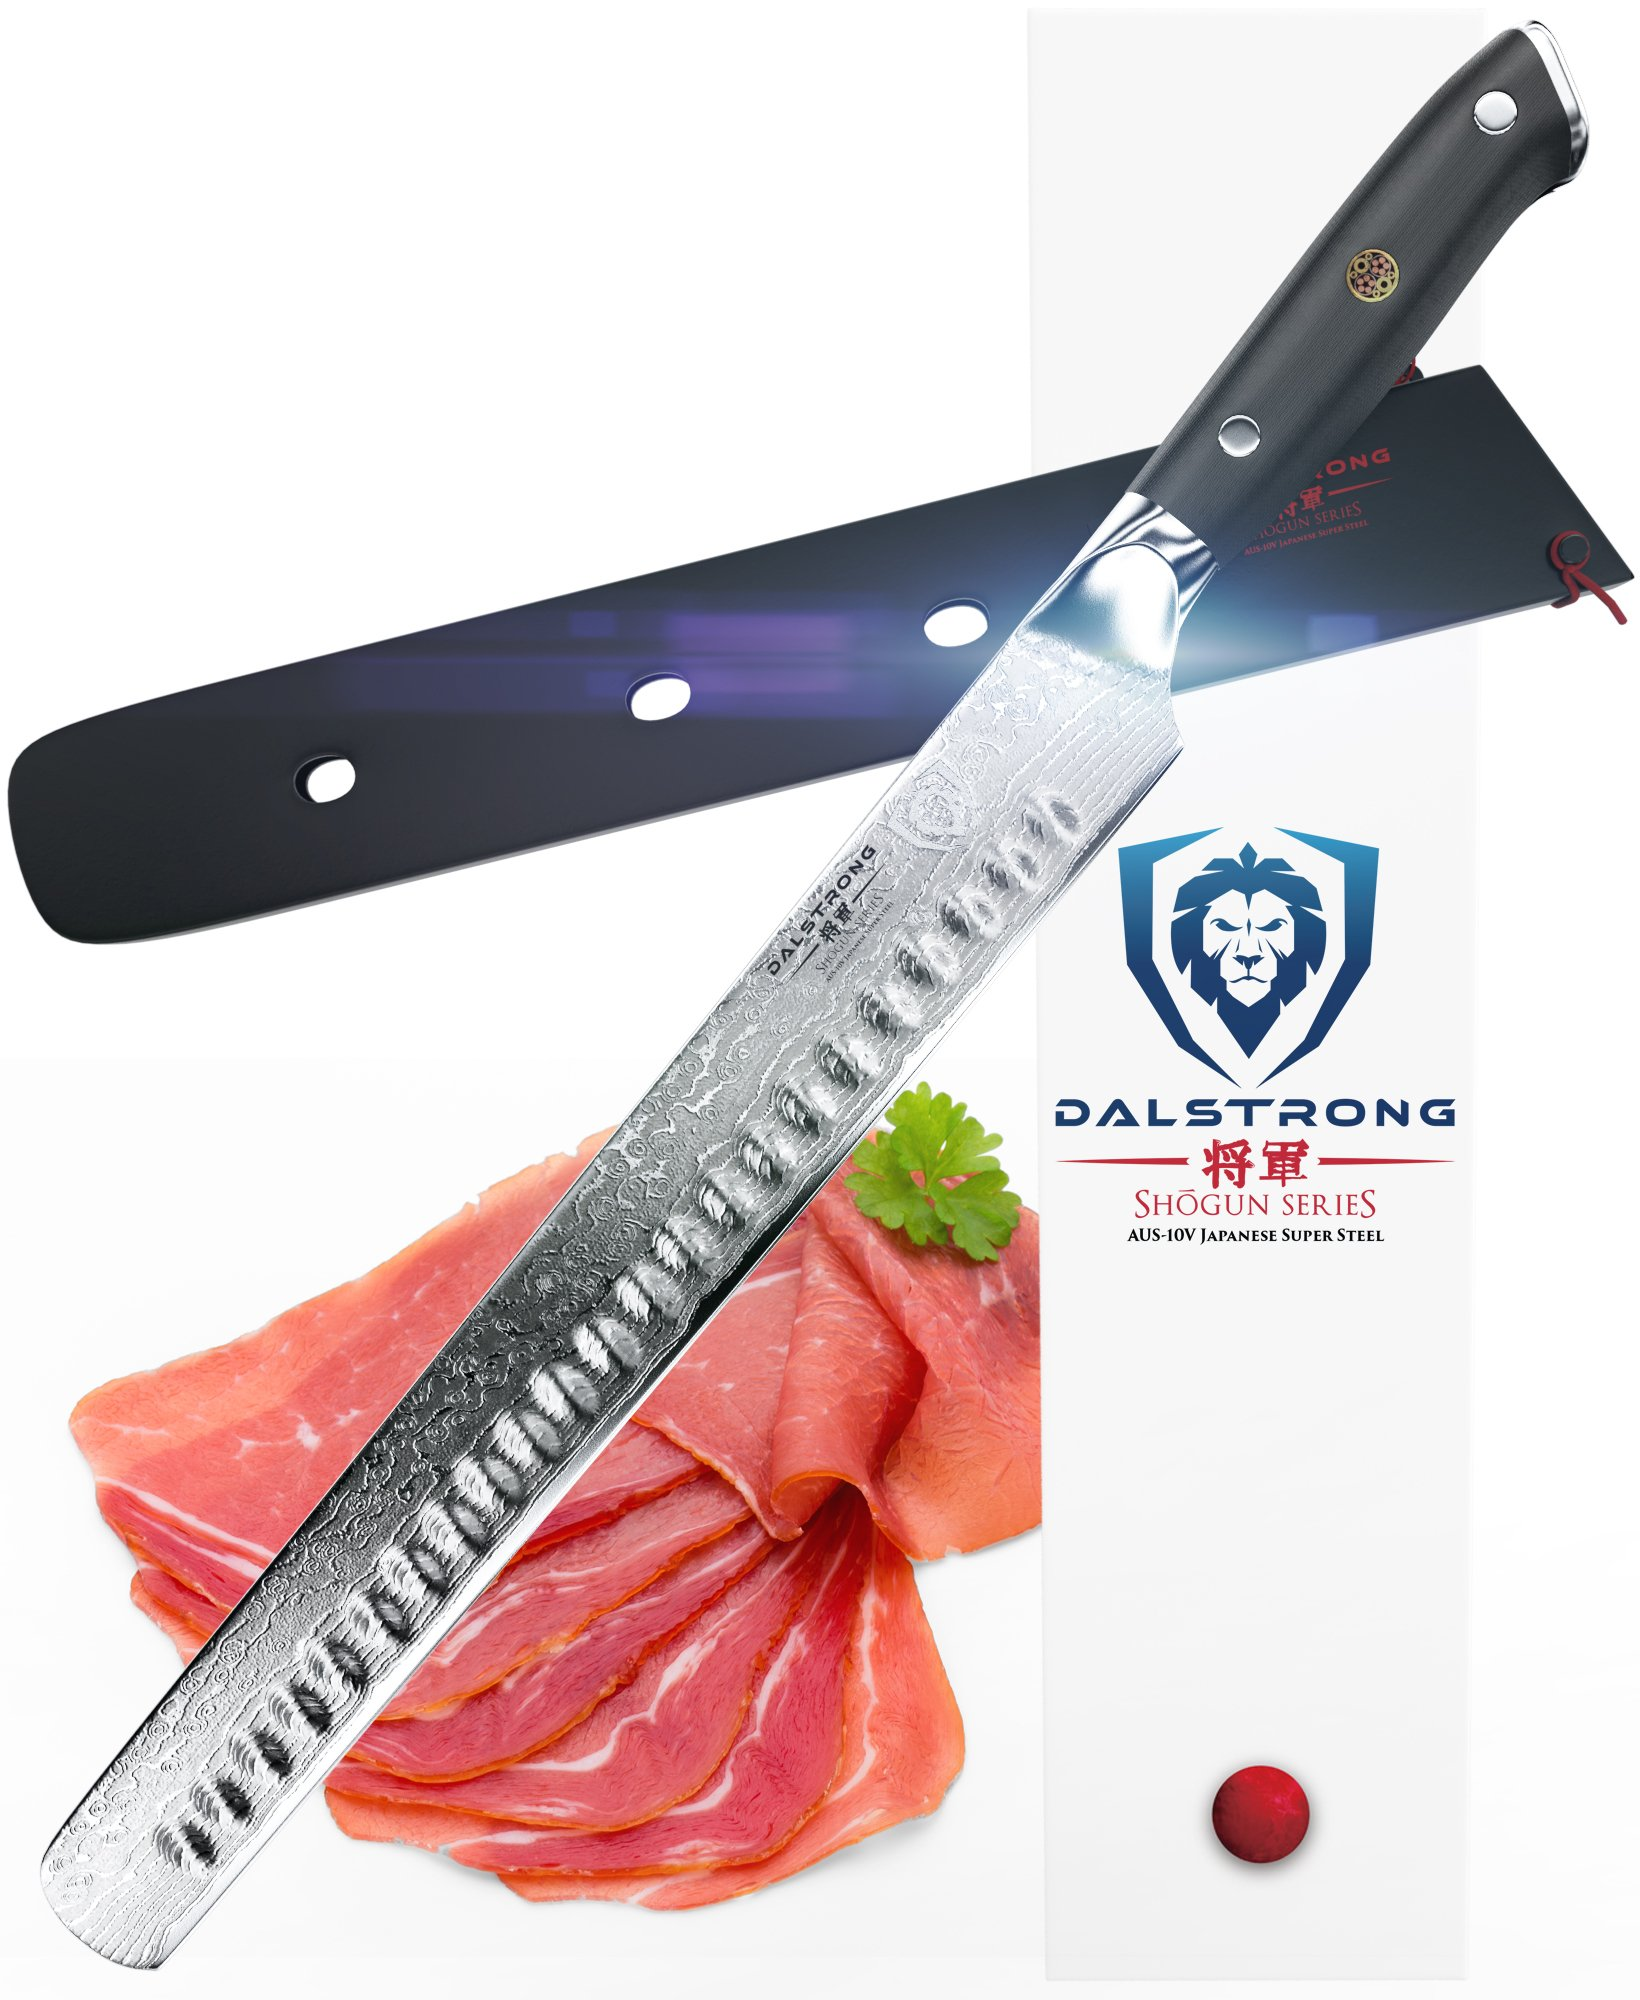 DALSTRONG Slicing Carving Knife - 12'' Granton Edge - Shogun Series - AUS-10V- Vacuum Treated - Sheath by Dalstrong